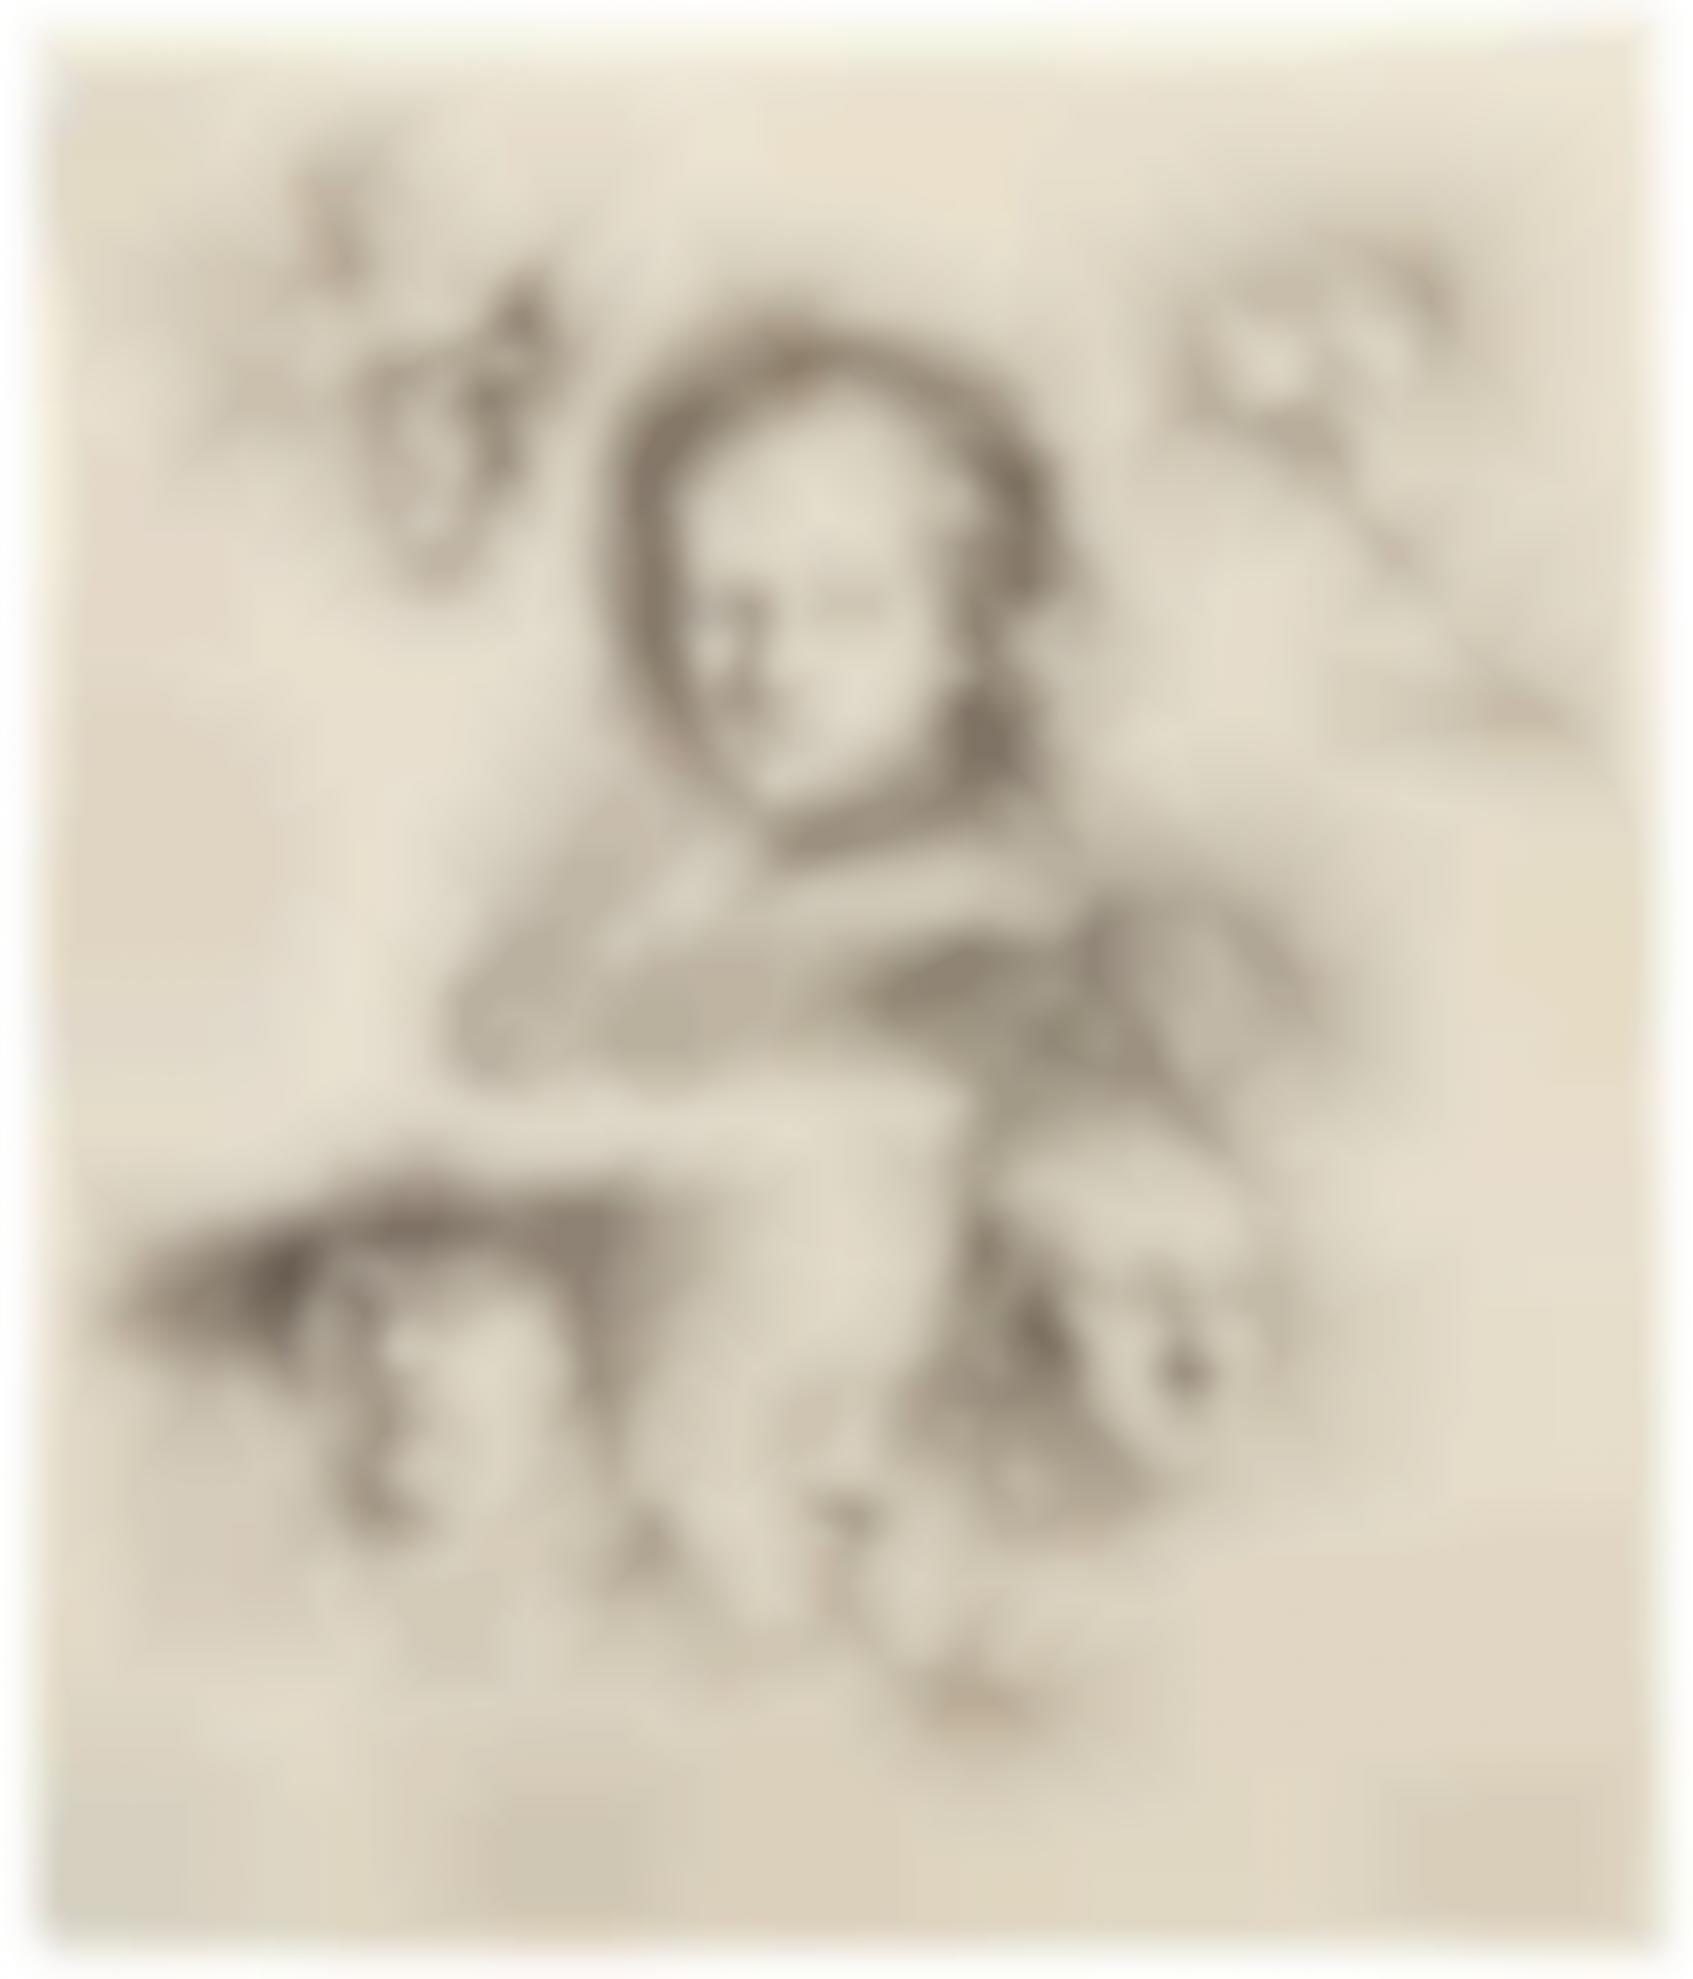 Rembrandt van Rijn-Studies Of Head Of Saskia And Others (B., Holl. 365; New Holl. 157; H. 145)-1636